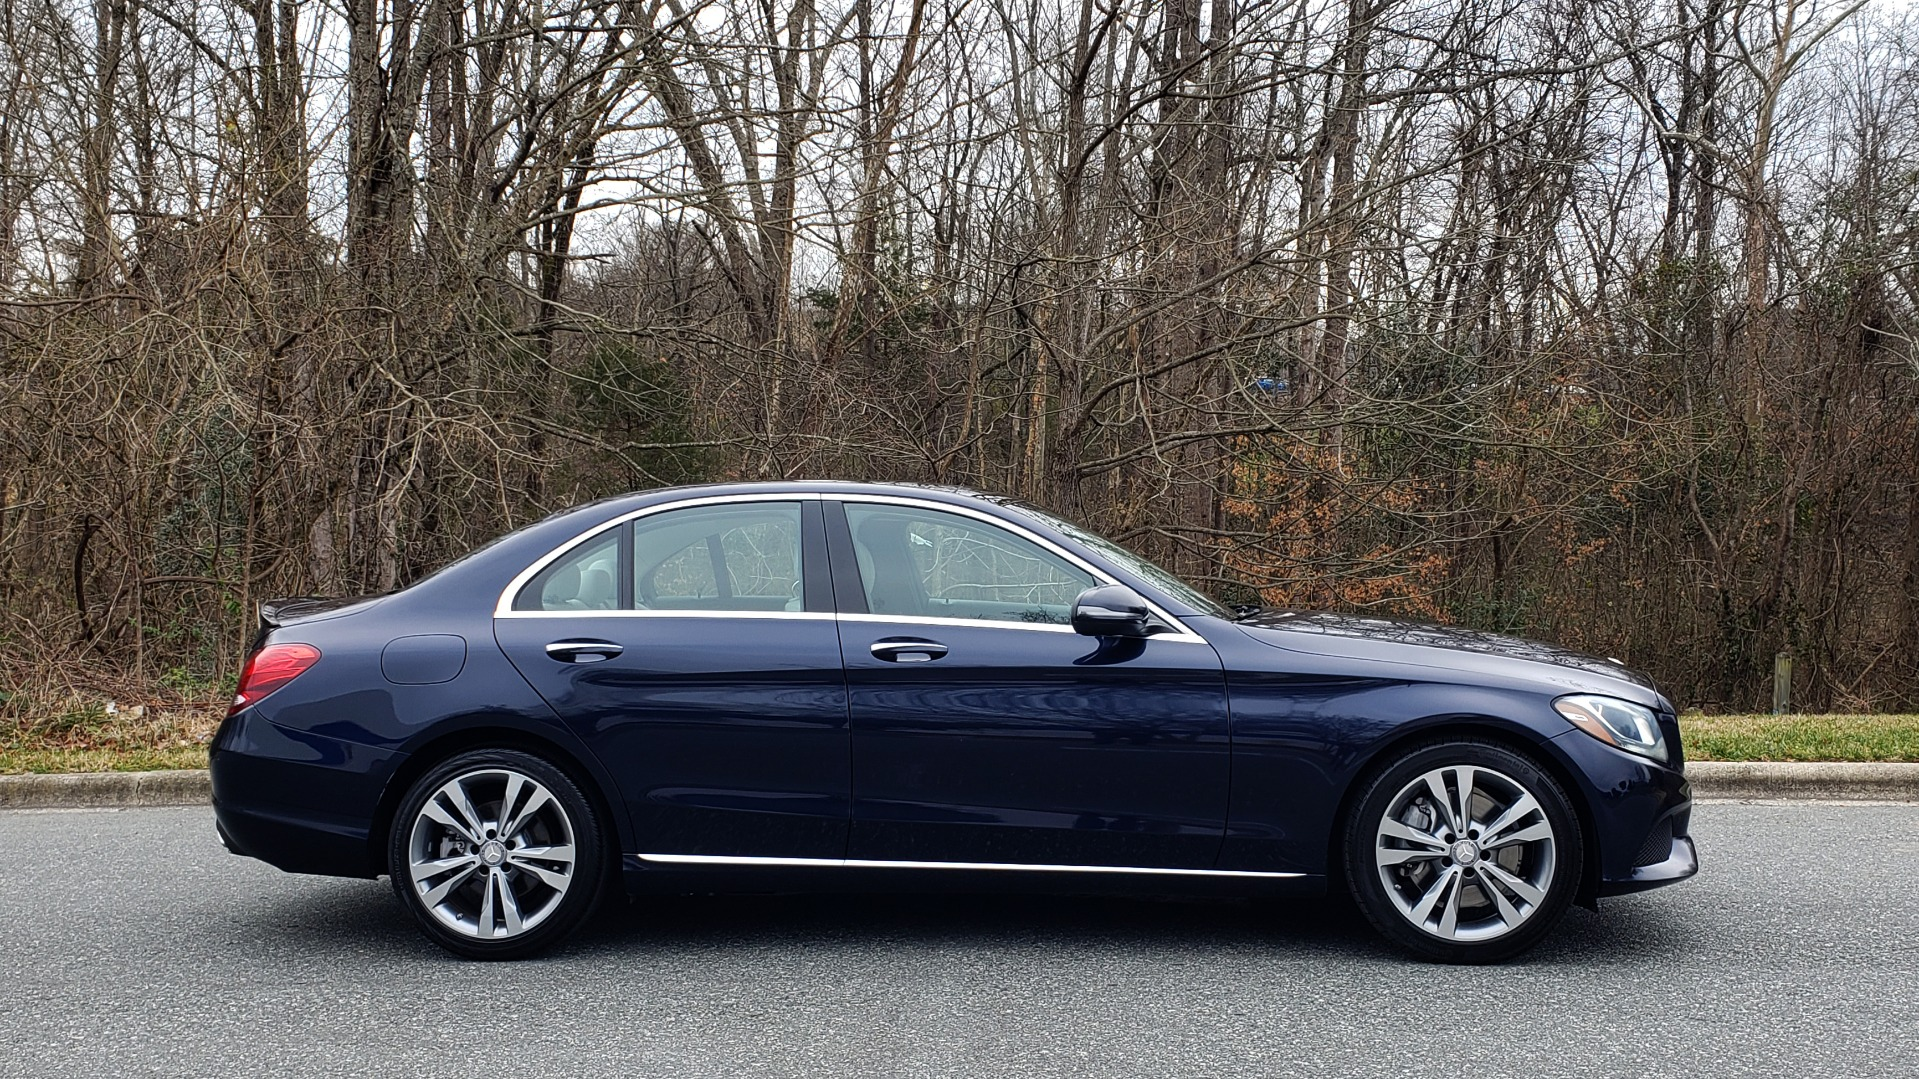 Used 2016 Mercedes-Benz C-CLASS C 300 / PREM PKG / PANO-ROOF / BSA / HTD STS / REARVIEW for sale Sold at Formula Imports in Charlotte NC 28227 5